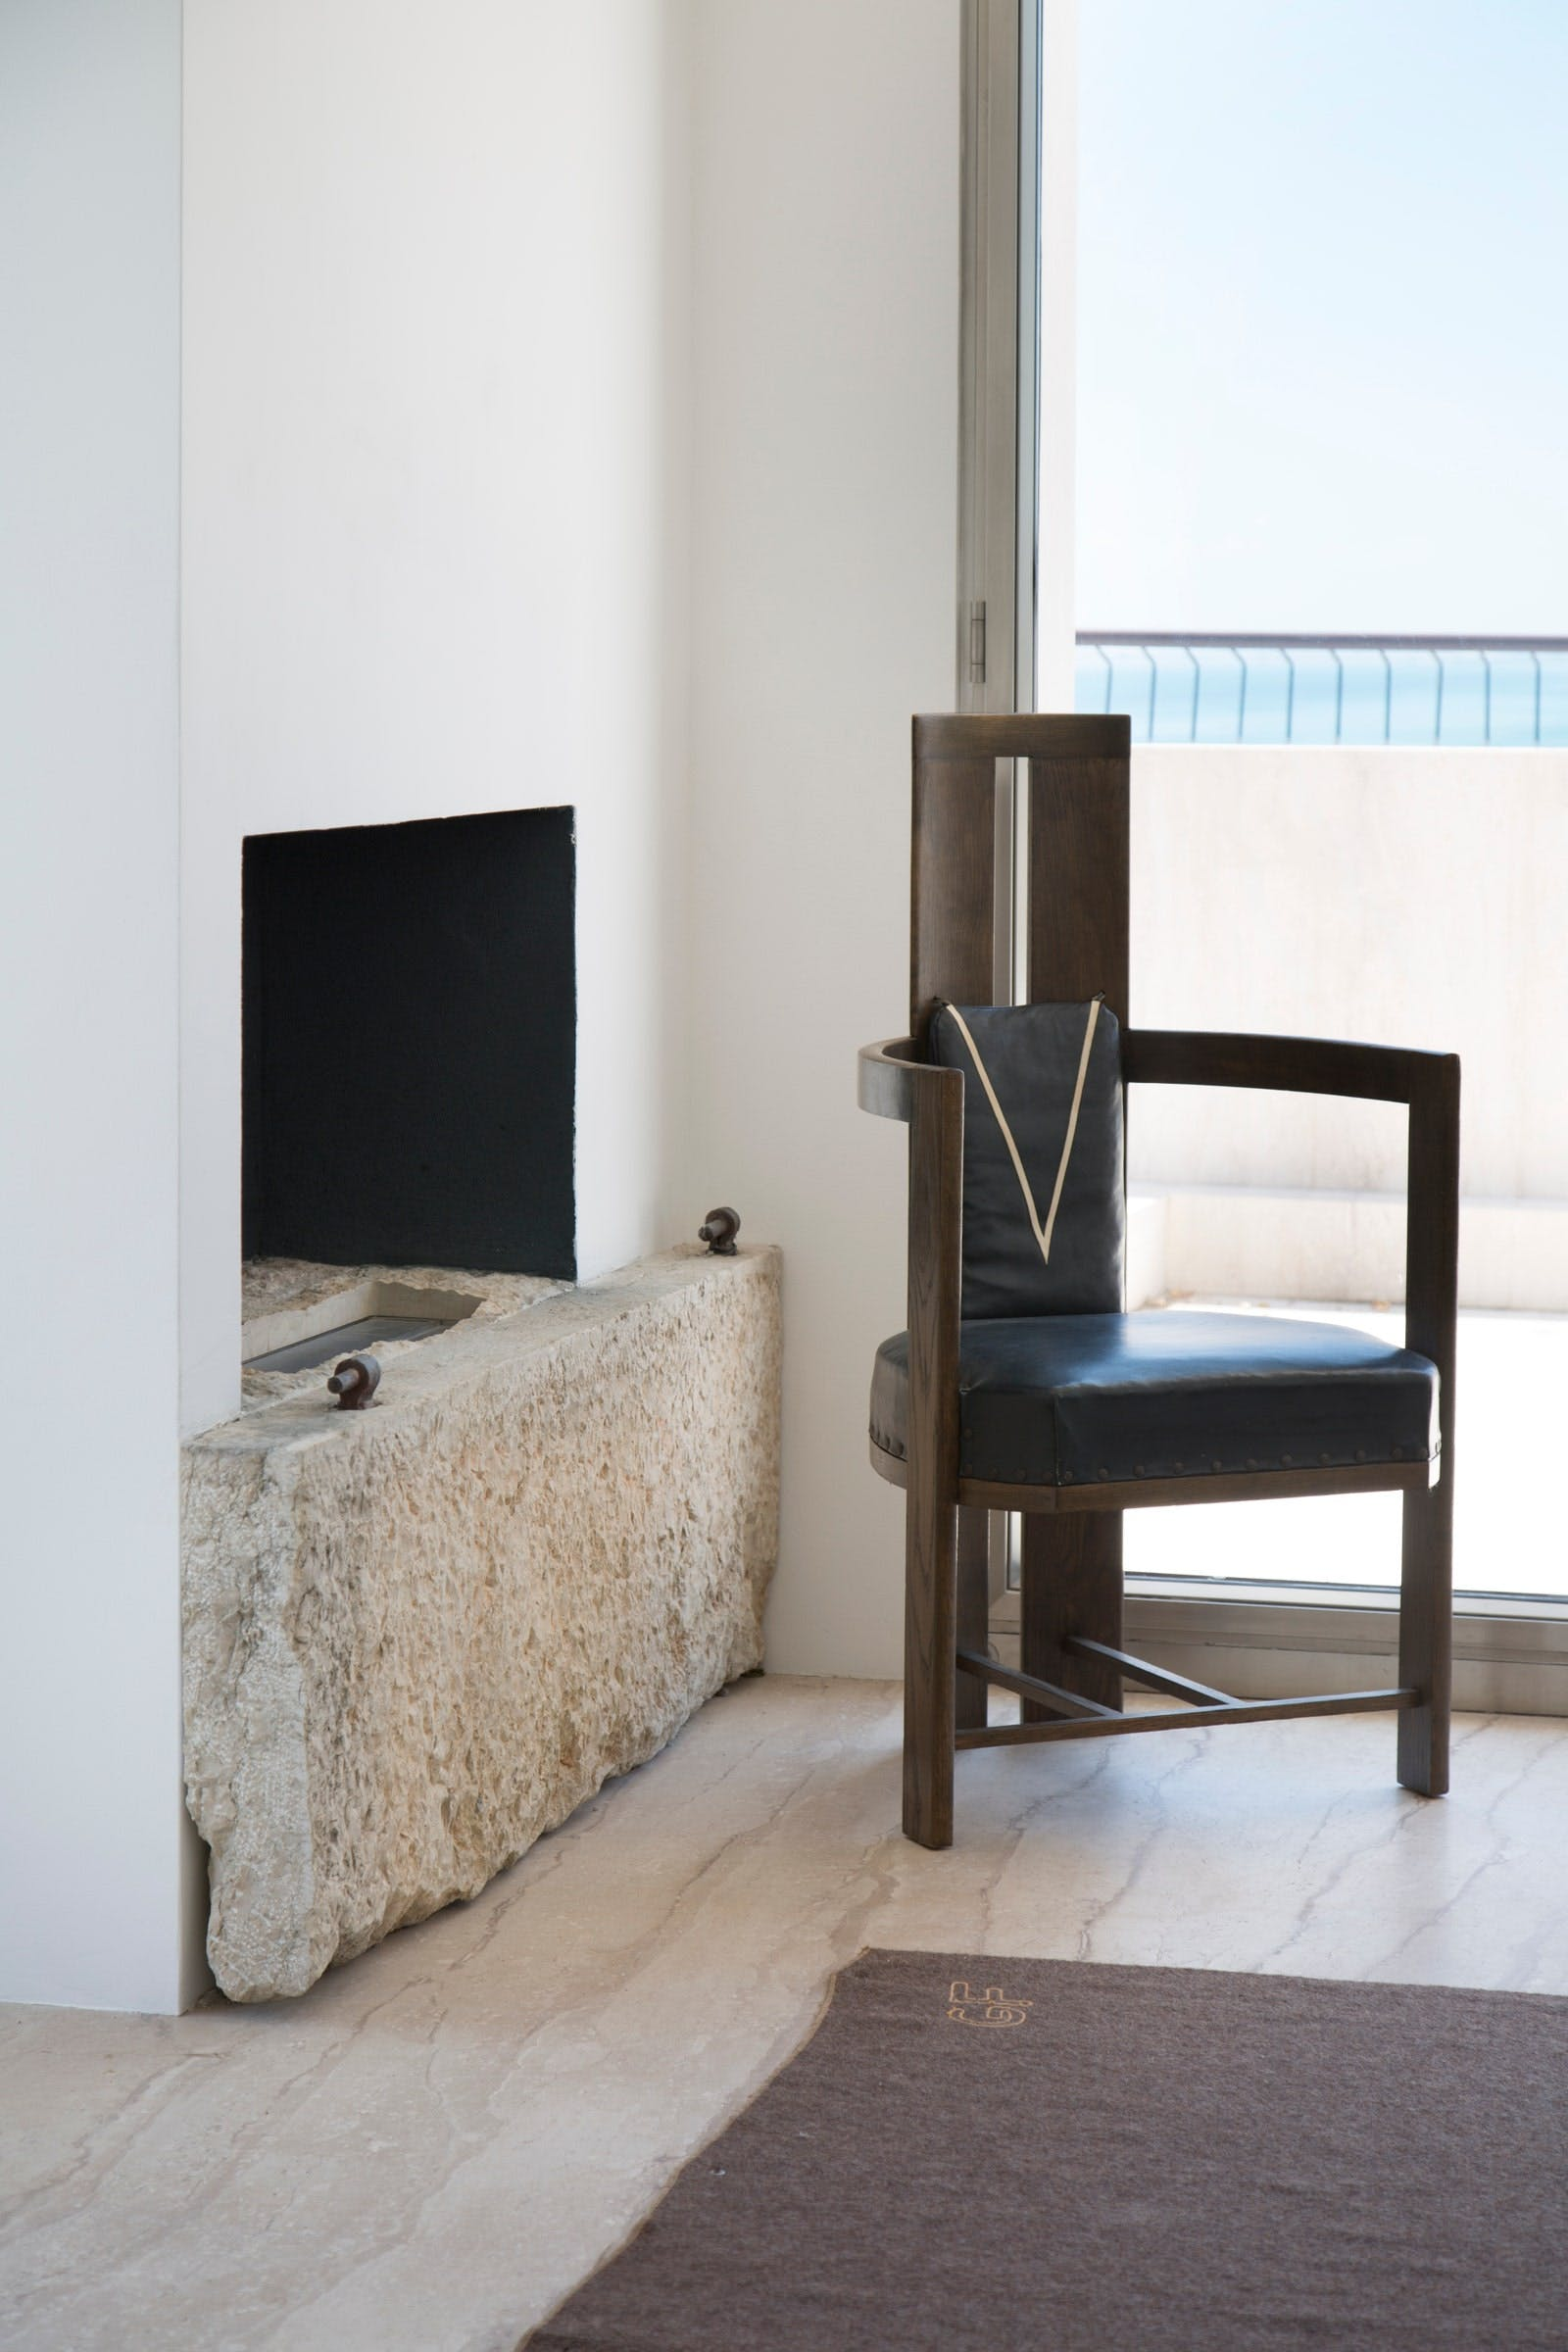 Rick Owens's minimalist house in Venice, Italy - Fireplace.